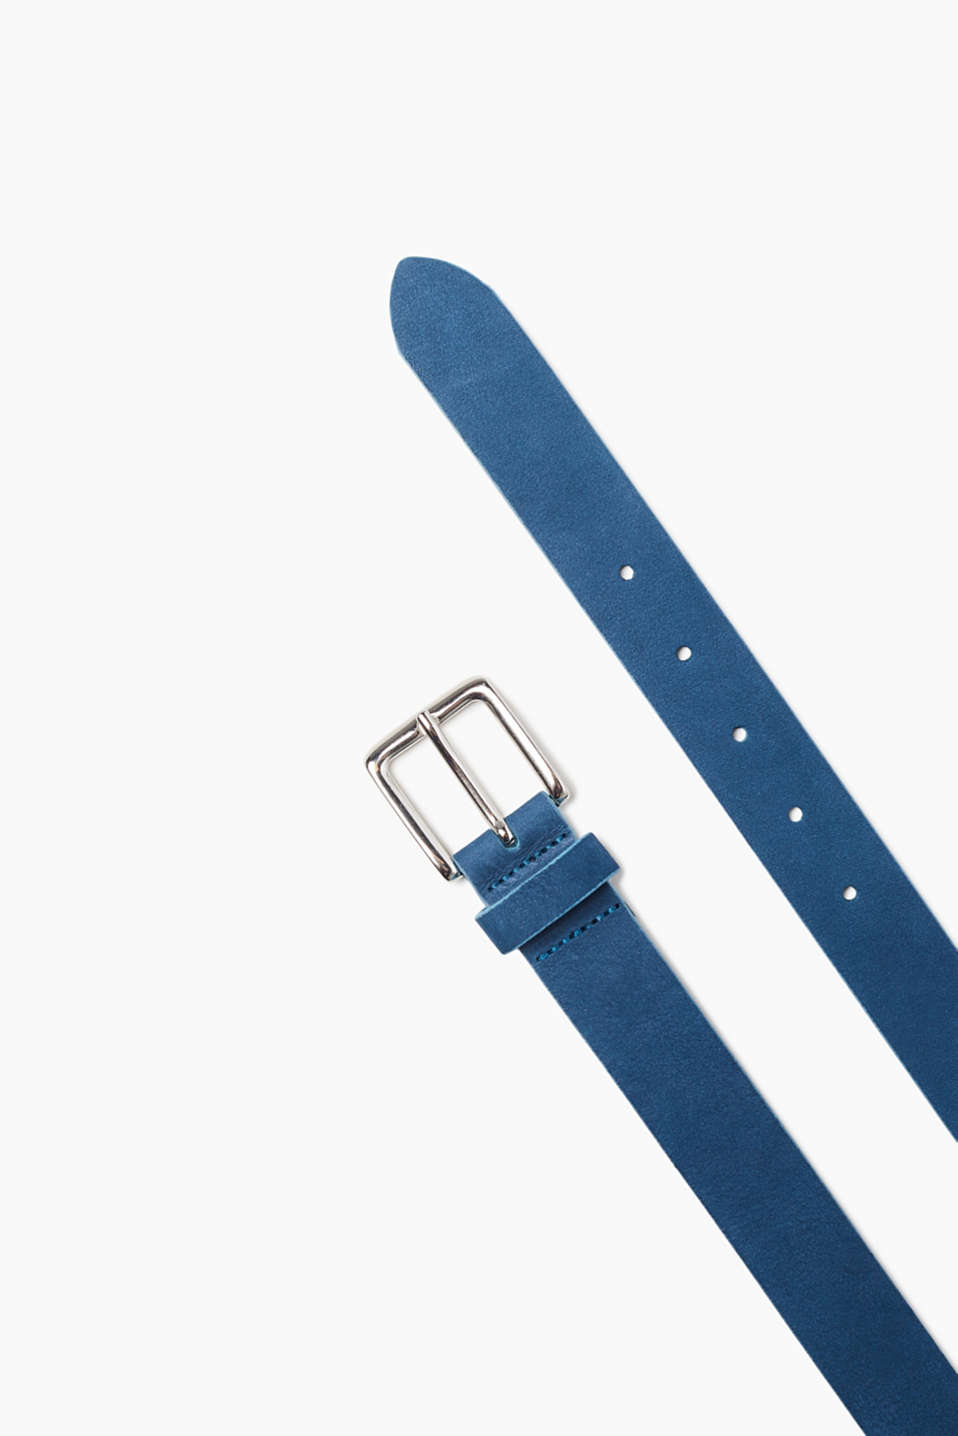 In colour: soft belt in 100% suede